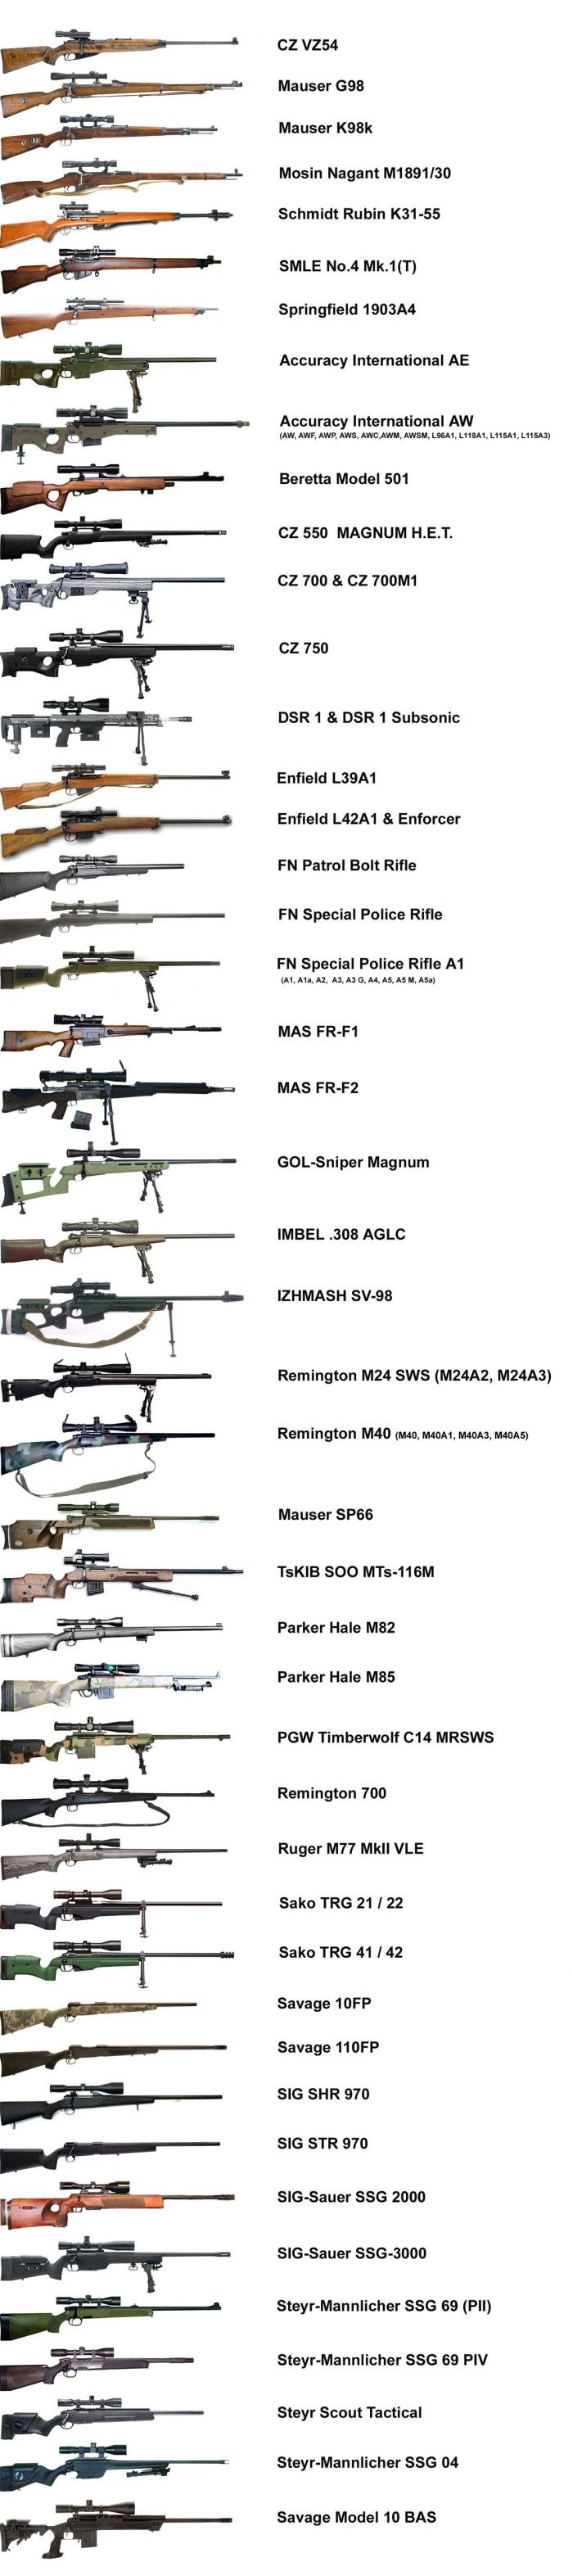 Any Sniper lovers?                                                                                                                                                                                 More